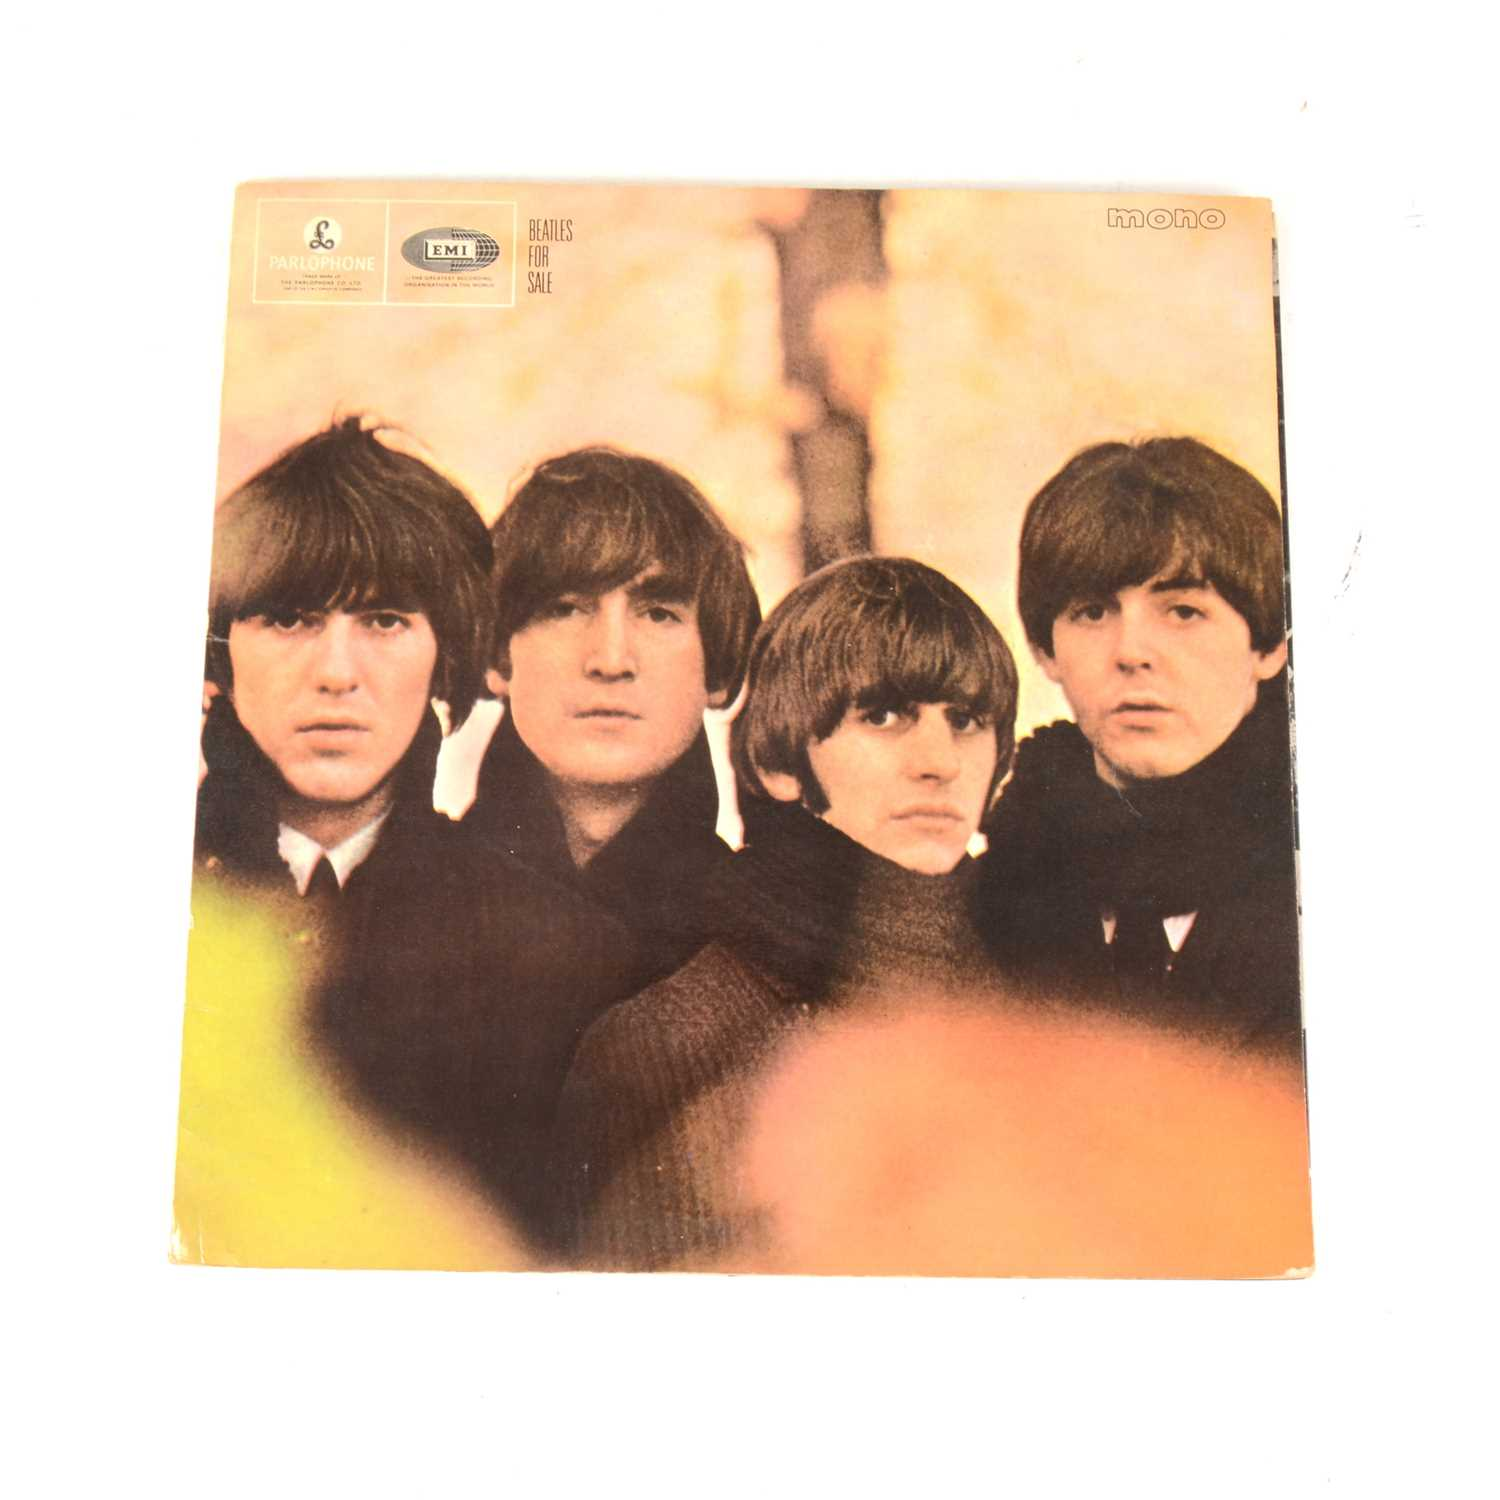 Lot 9-The Beatles For Sale LP vinyl record; first mono pressing PMC 1240, matrix 503-4N/504-4, Emitex sleeve.